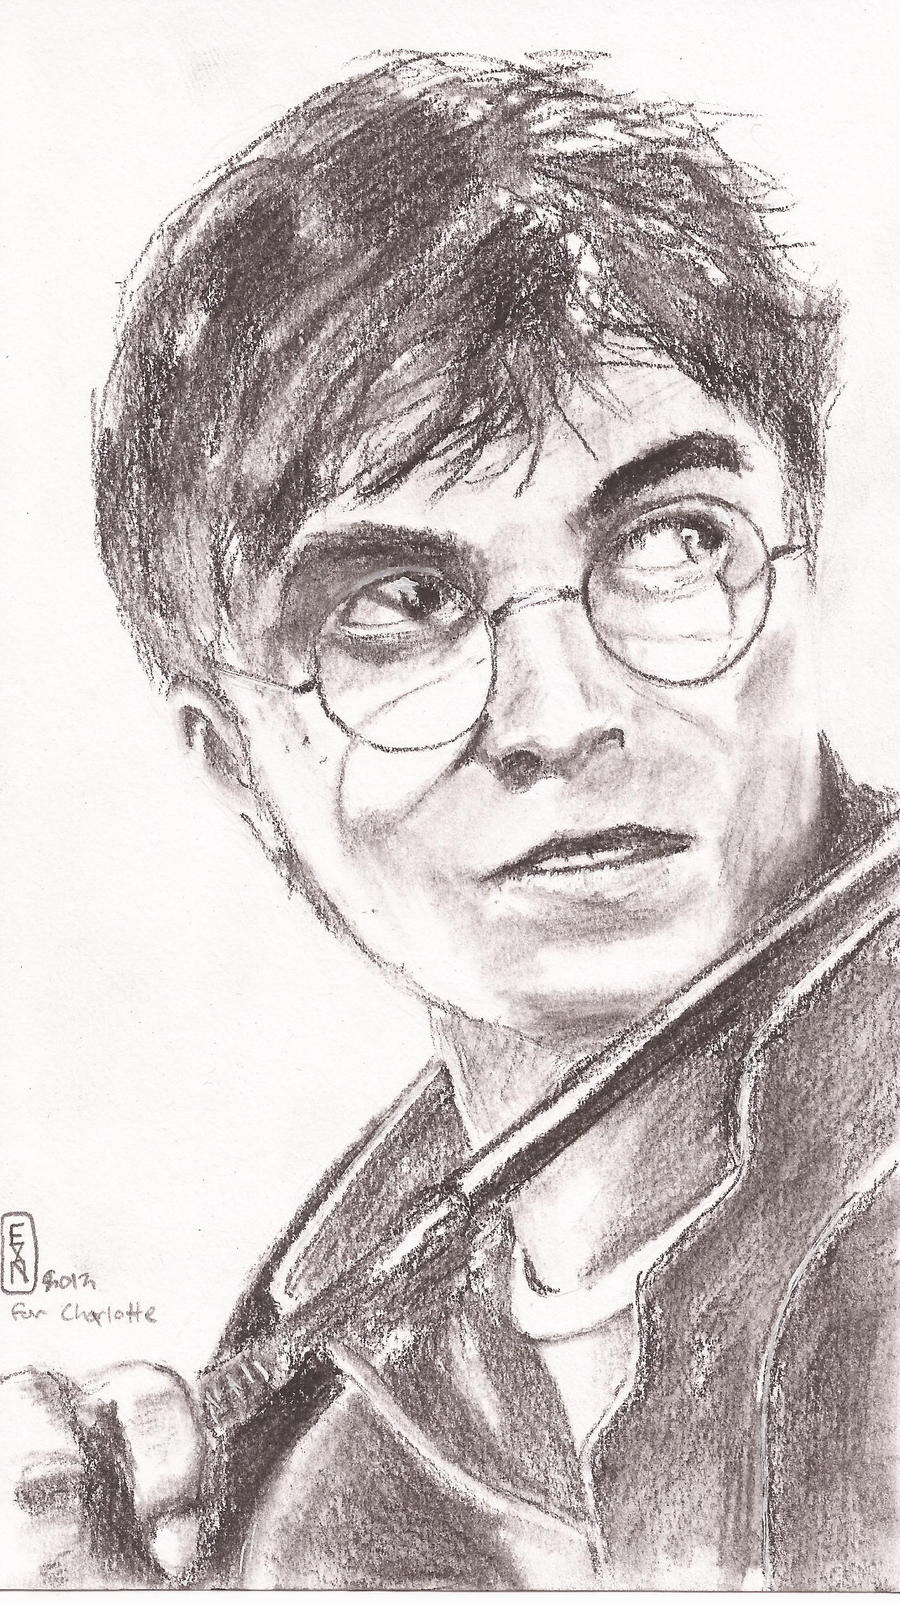 Harry Potter Charcoal Portrait by IvurNave